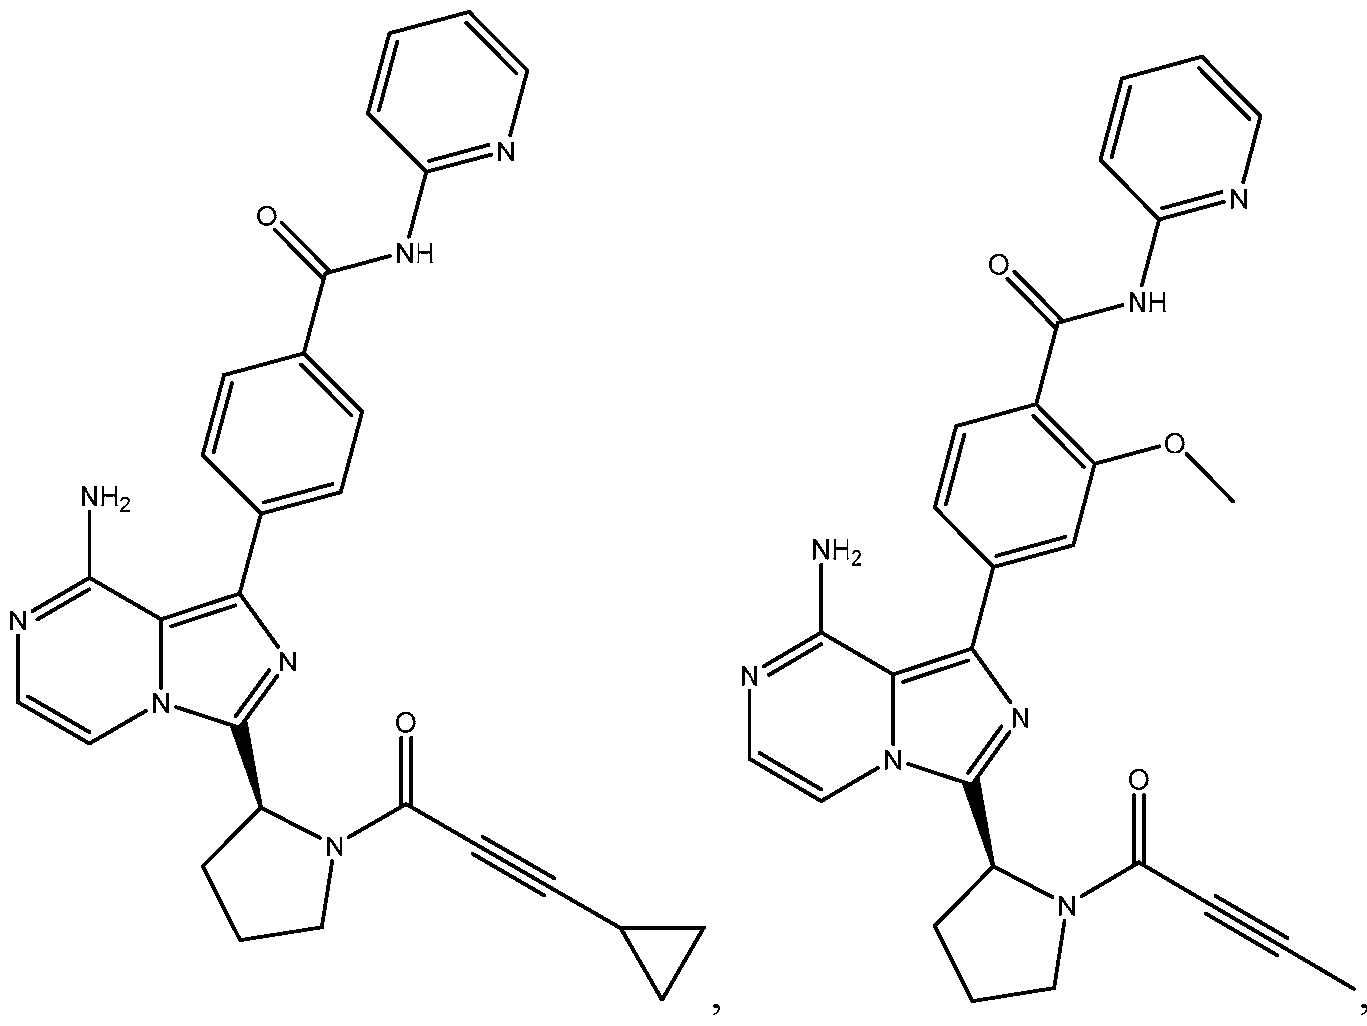 hight resolution of wo2017046747a1 therapeutic combinations of a cd19 inhibitor and a btk inhibitor google patents